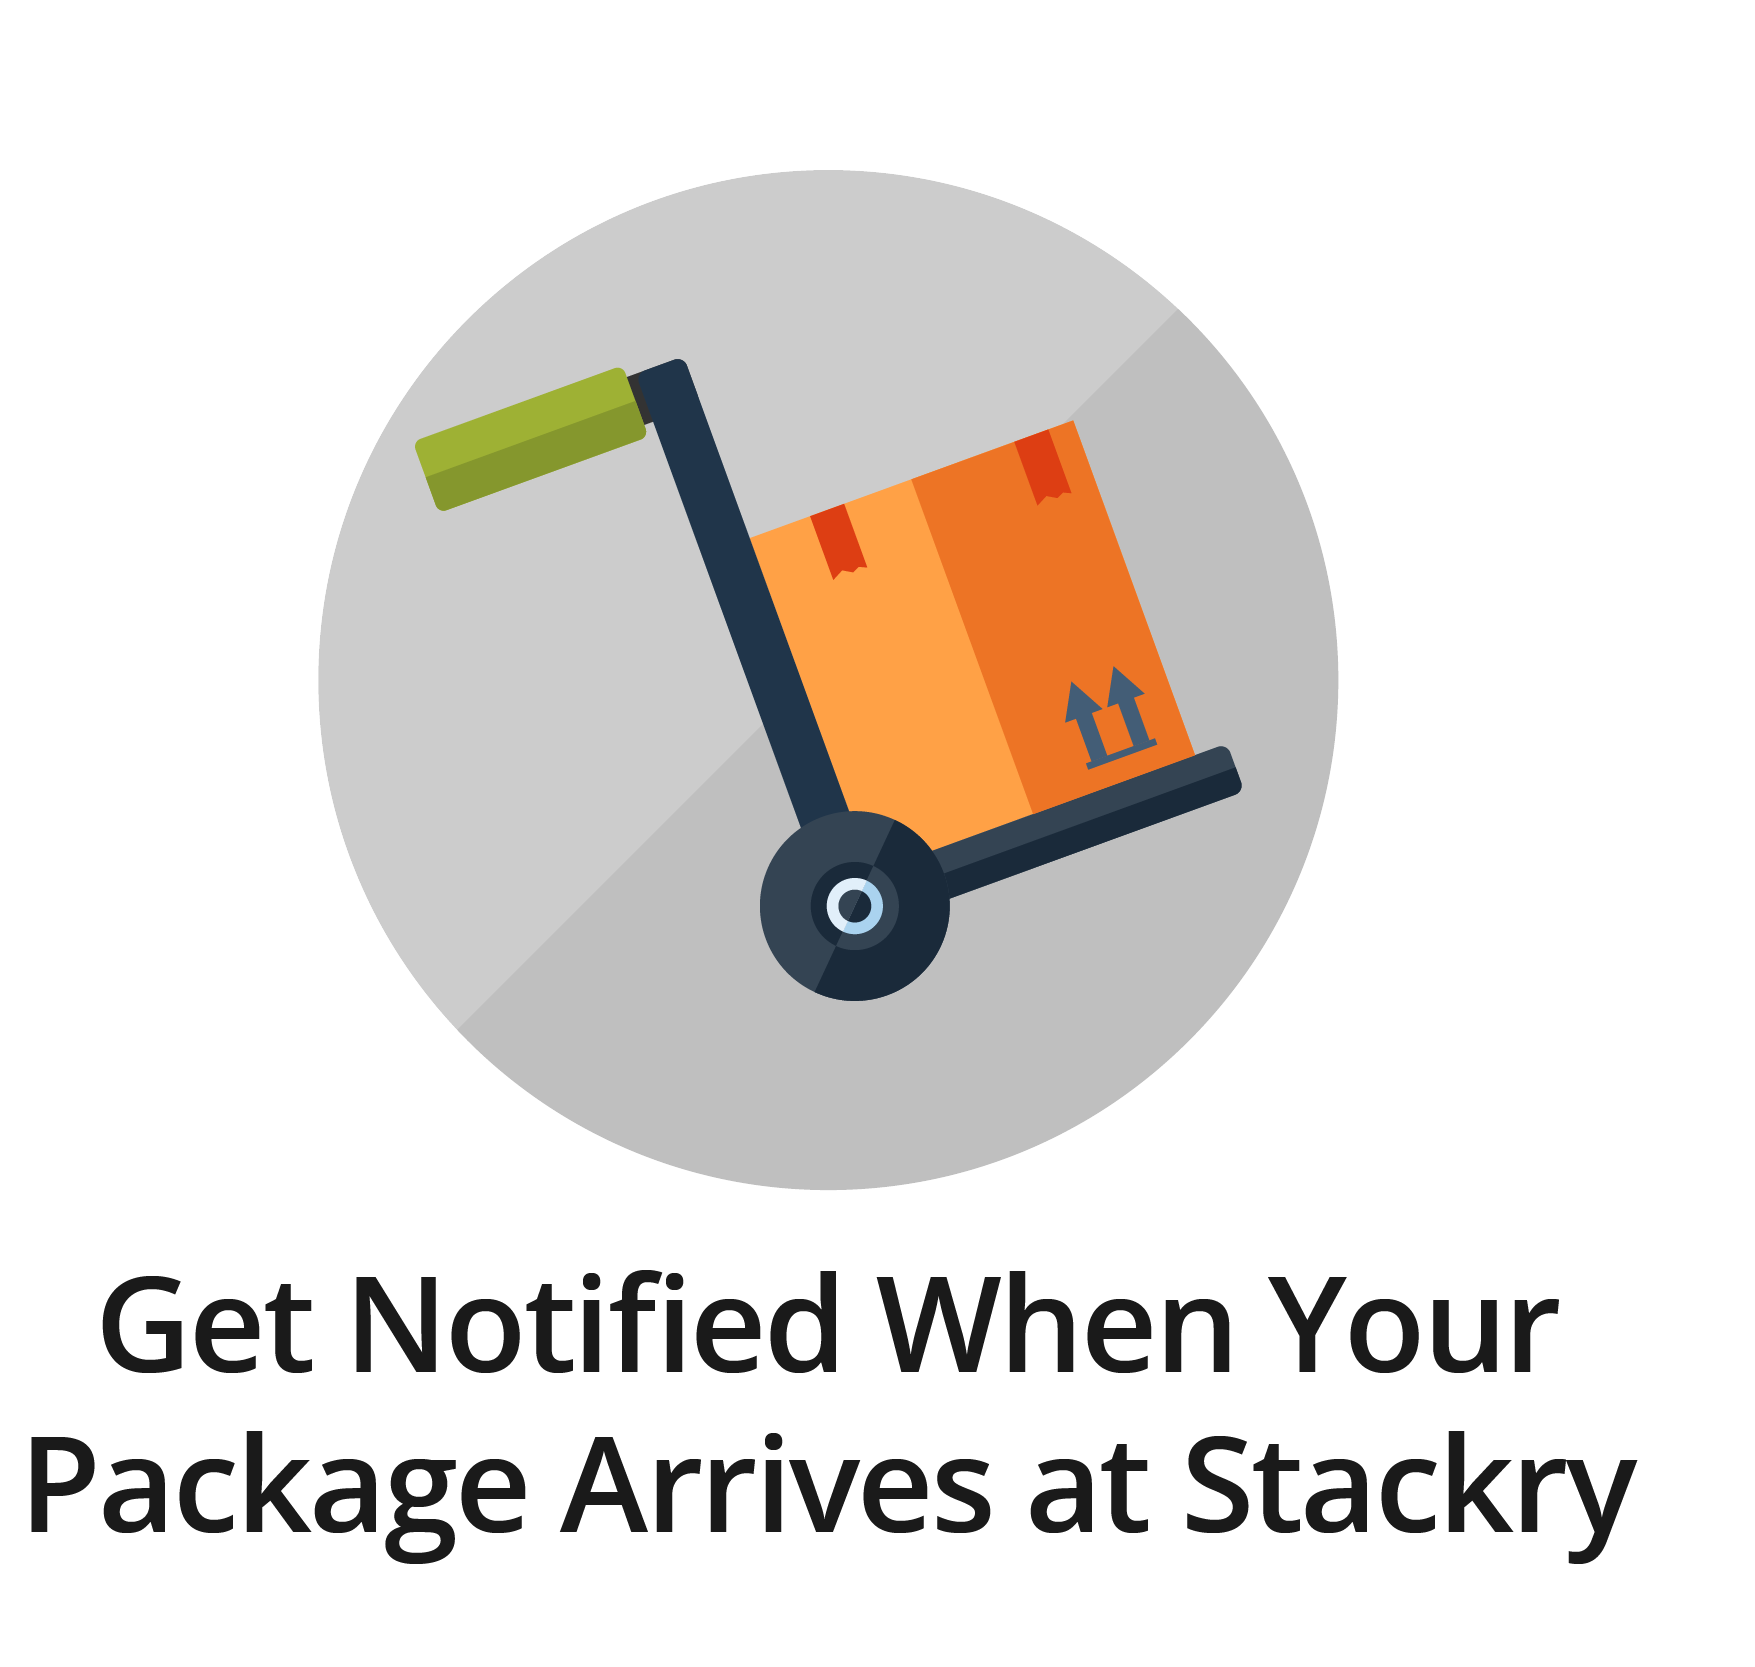 Get Notified When Your Package Arrives at Stackry